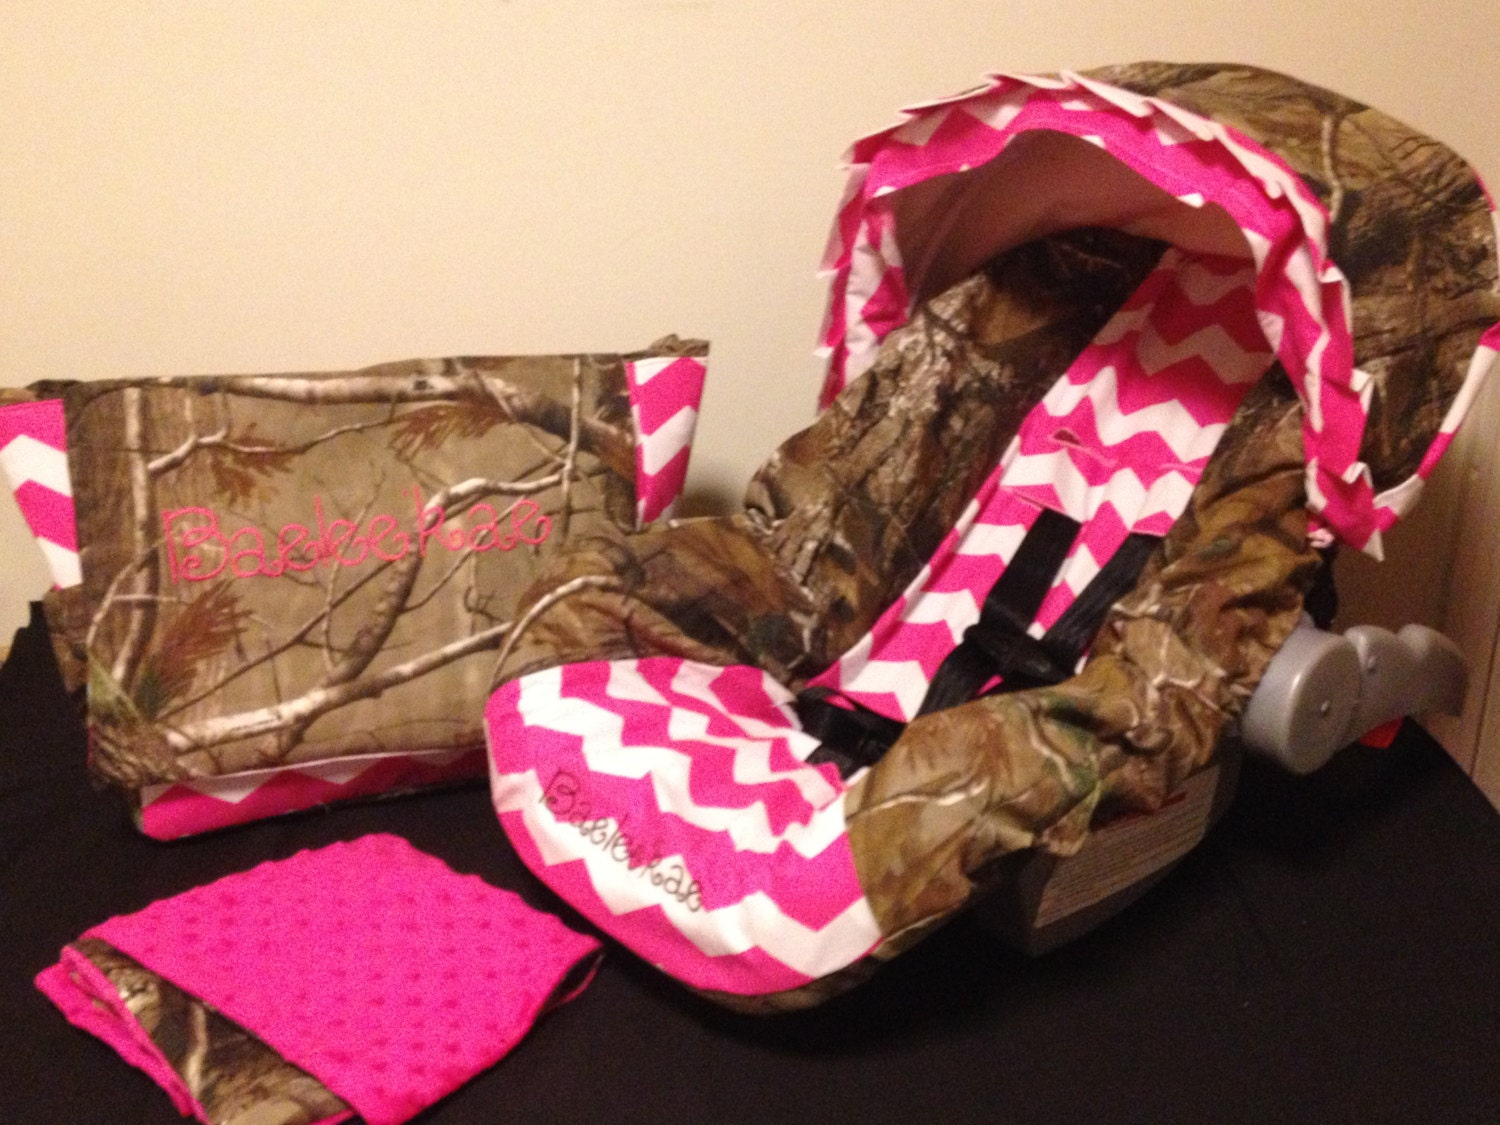 3 Piece Set Pink Chevron Amp Realtree Camo Fabric Infant Car